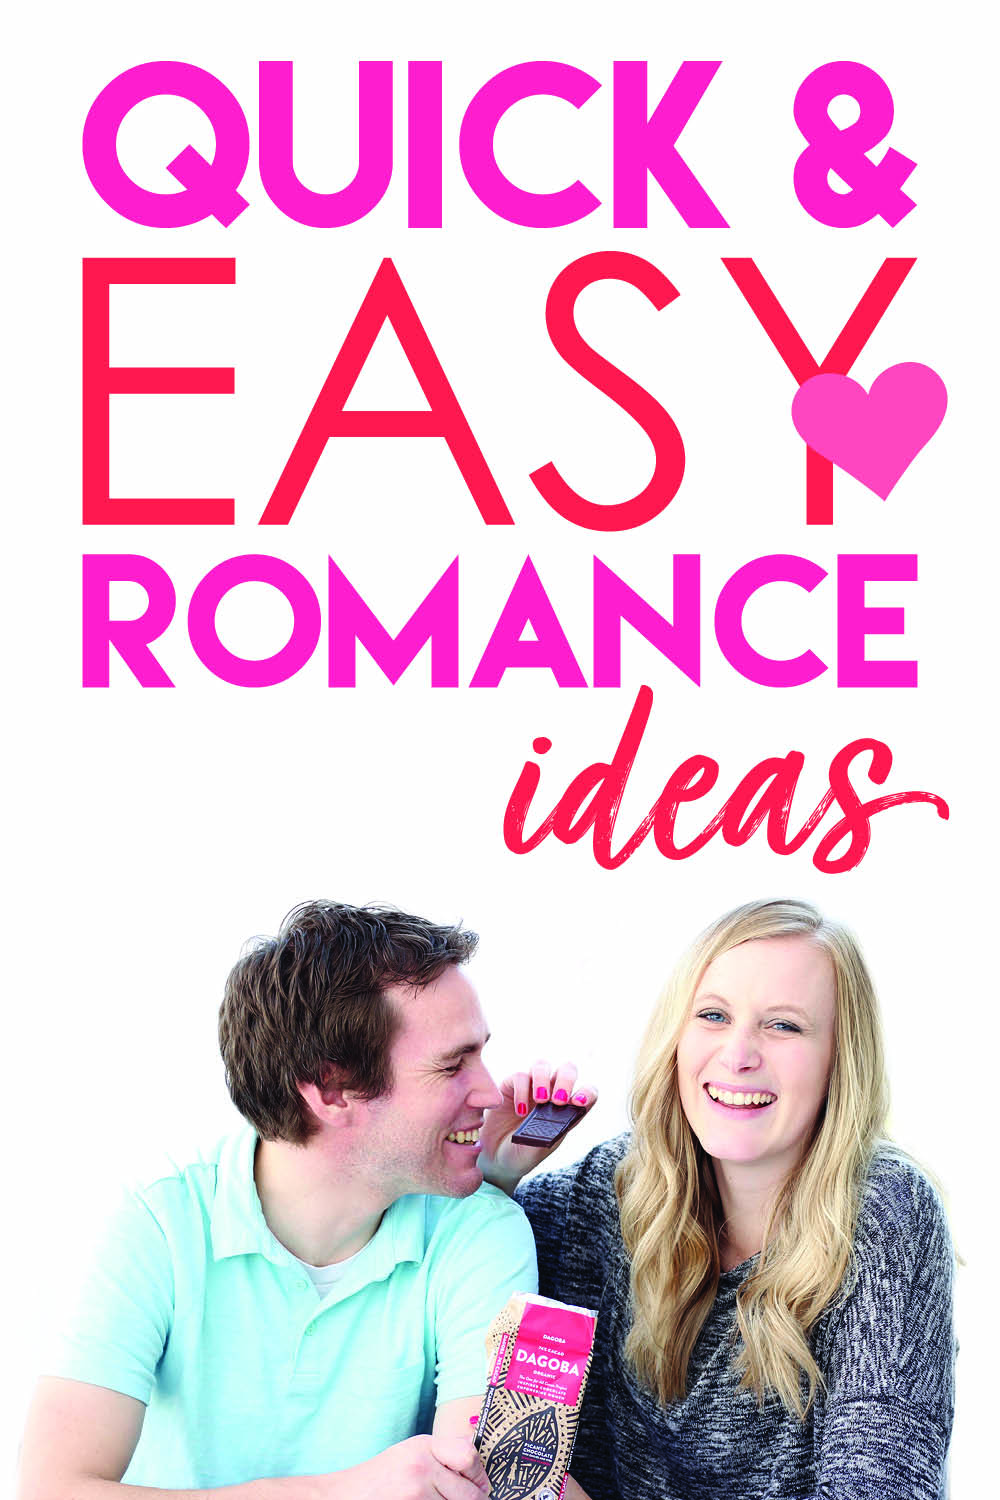 These romantic ideas are SO easy! Can't wait to try them! #datingdivas #romanticideas #romanticdates